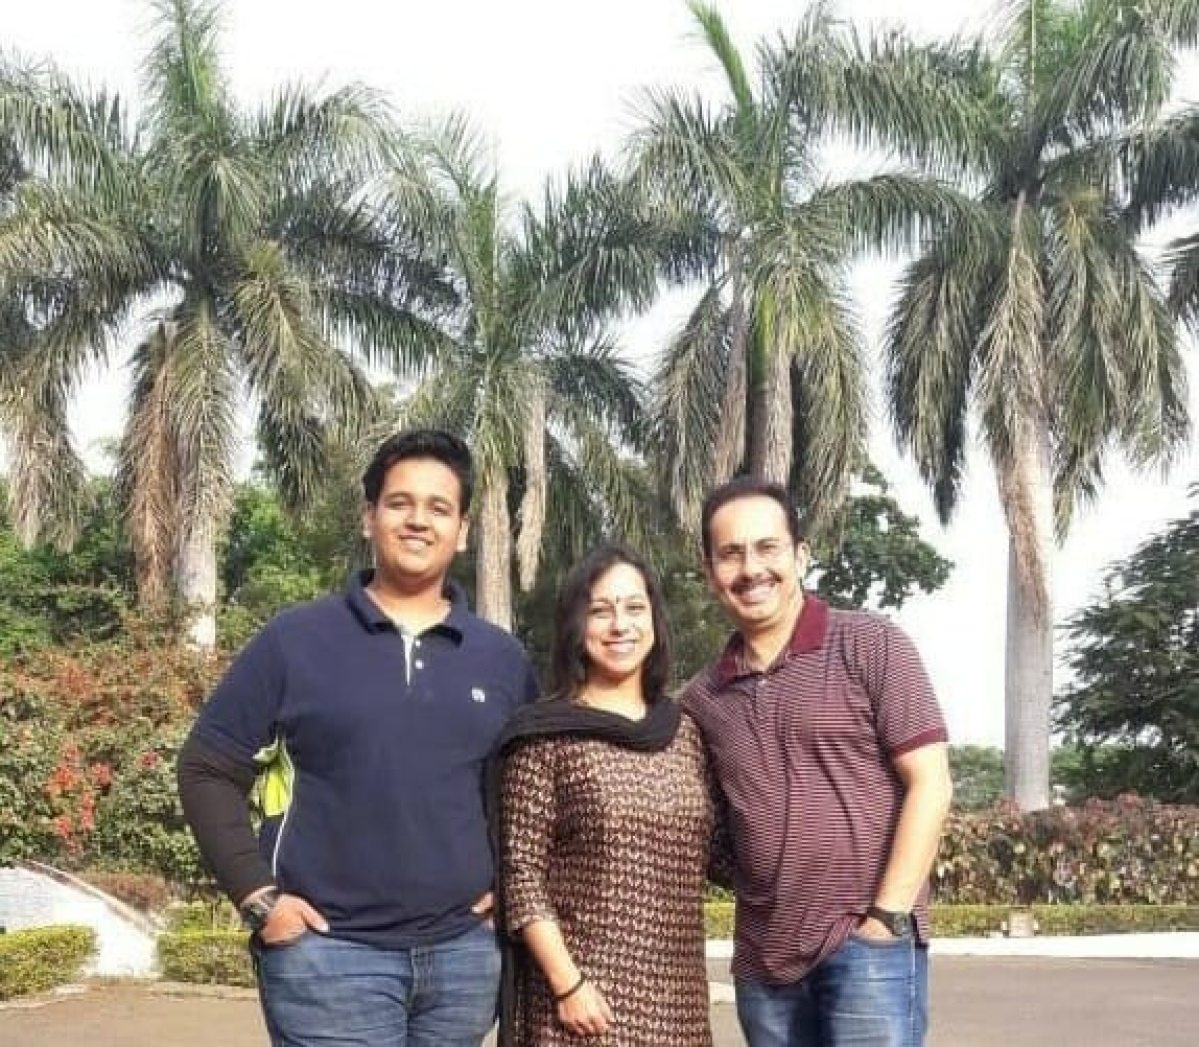 Indore: On International Womens' Day, meet two doctors who get close to deadly coronavirus everyday